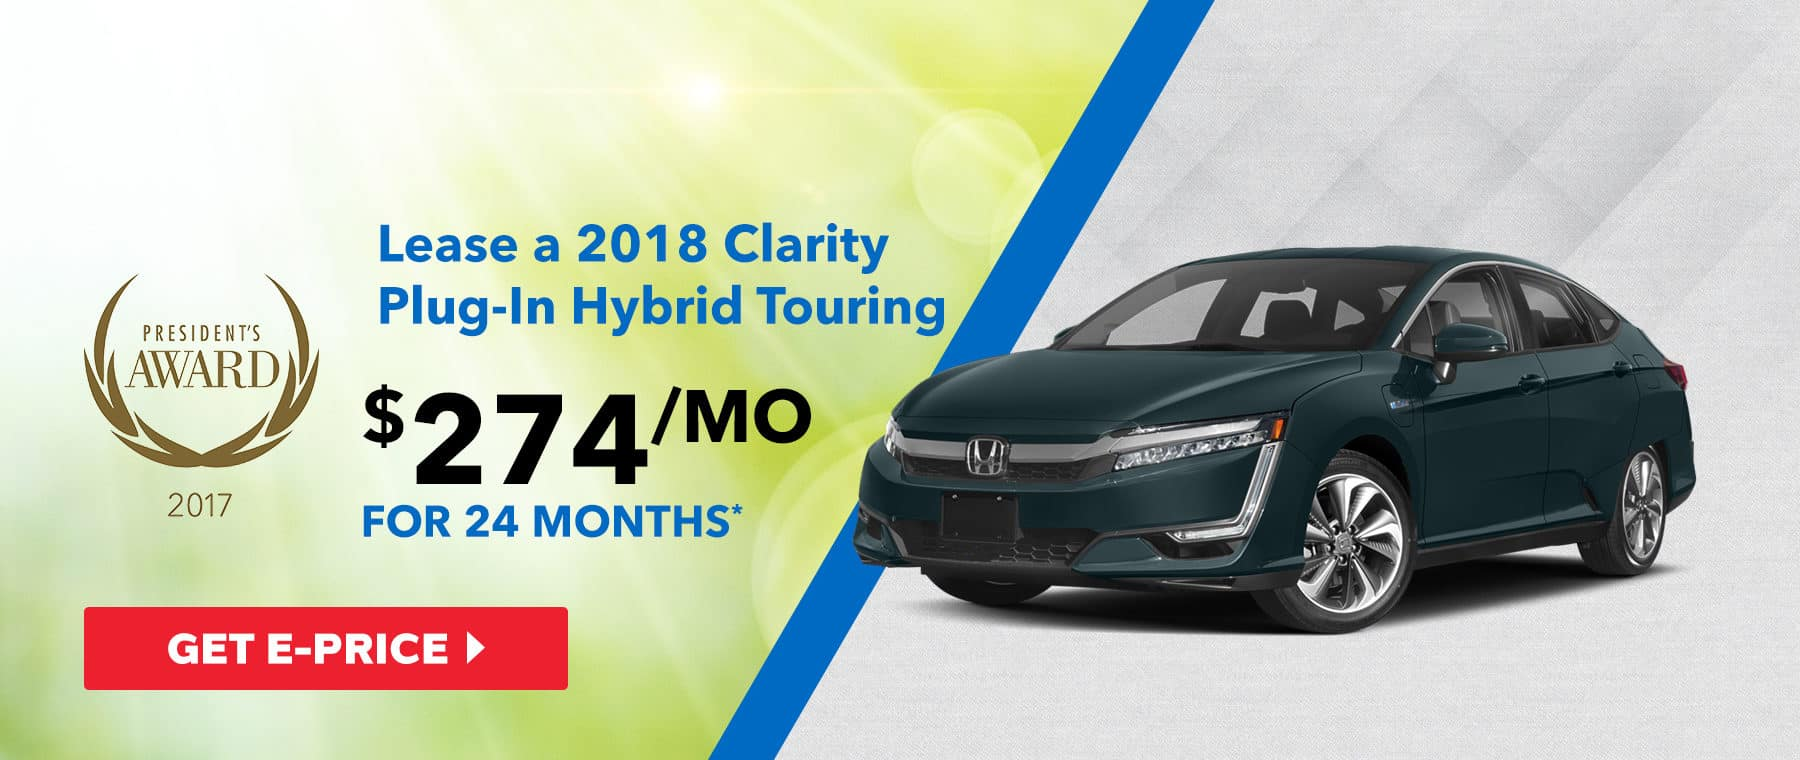 2018 Clarity Plug-In Hybrid Touring